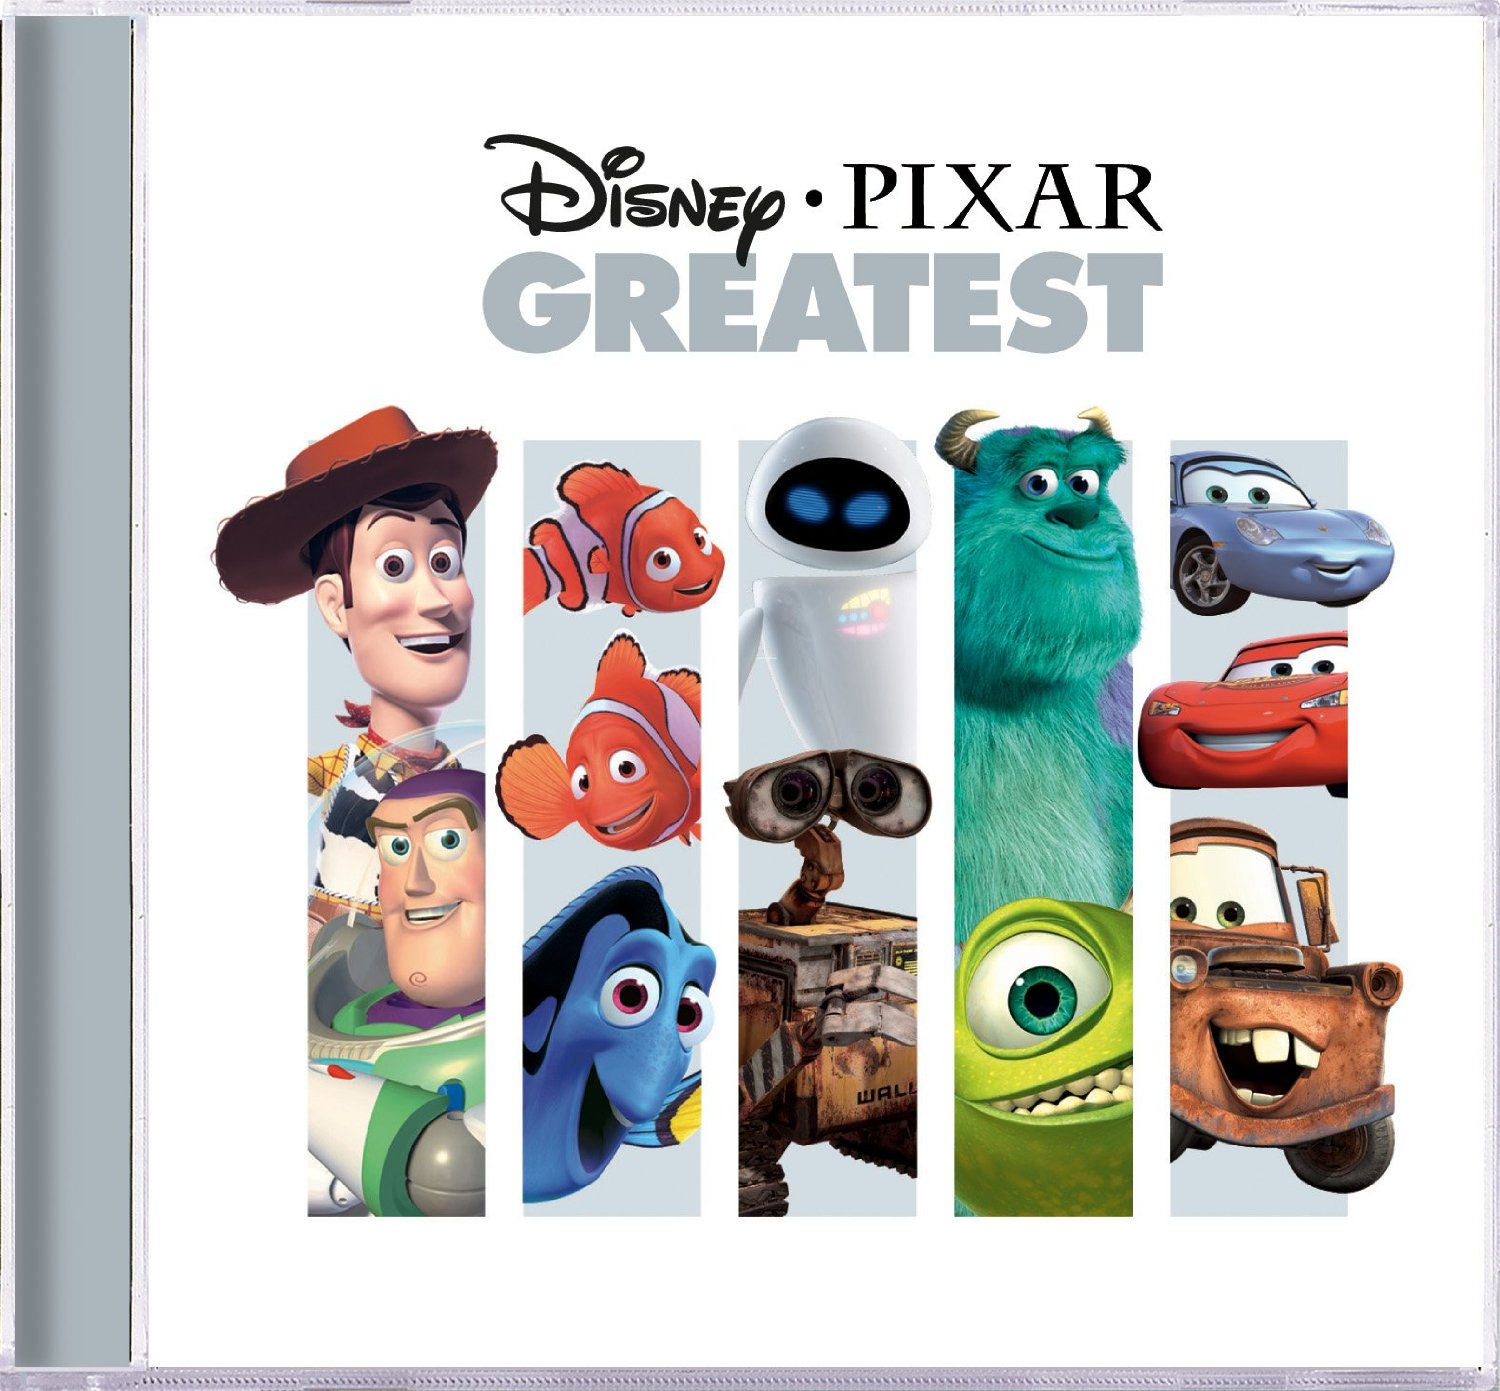 203 Best Images About Disney Pixar Dreamworks On: FANDOM Powered By Wikia